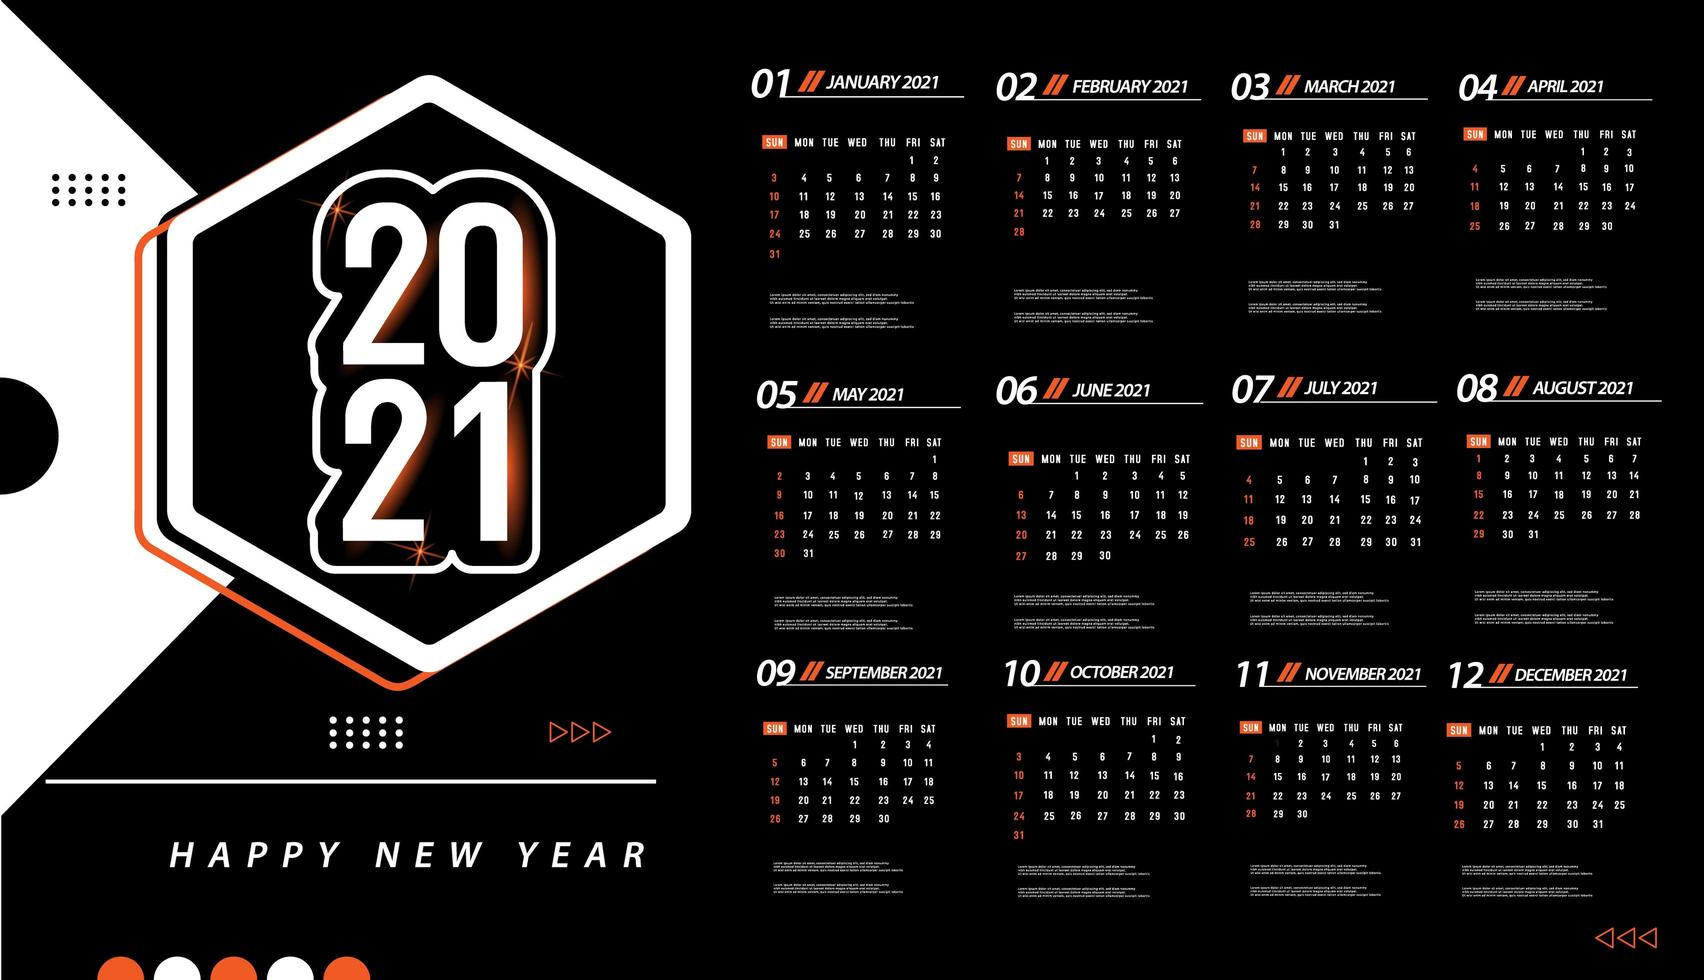 2021 Vector Calendar One page 2021 calendar template   Download Free Vectors, Clipart